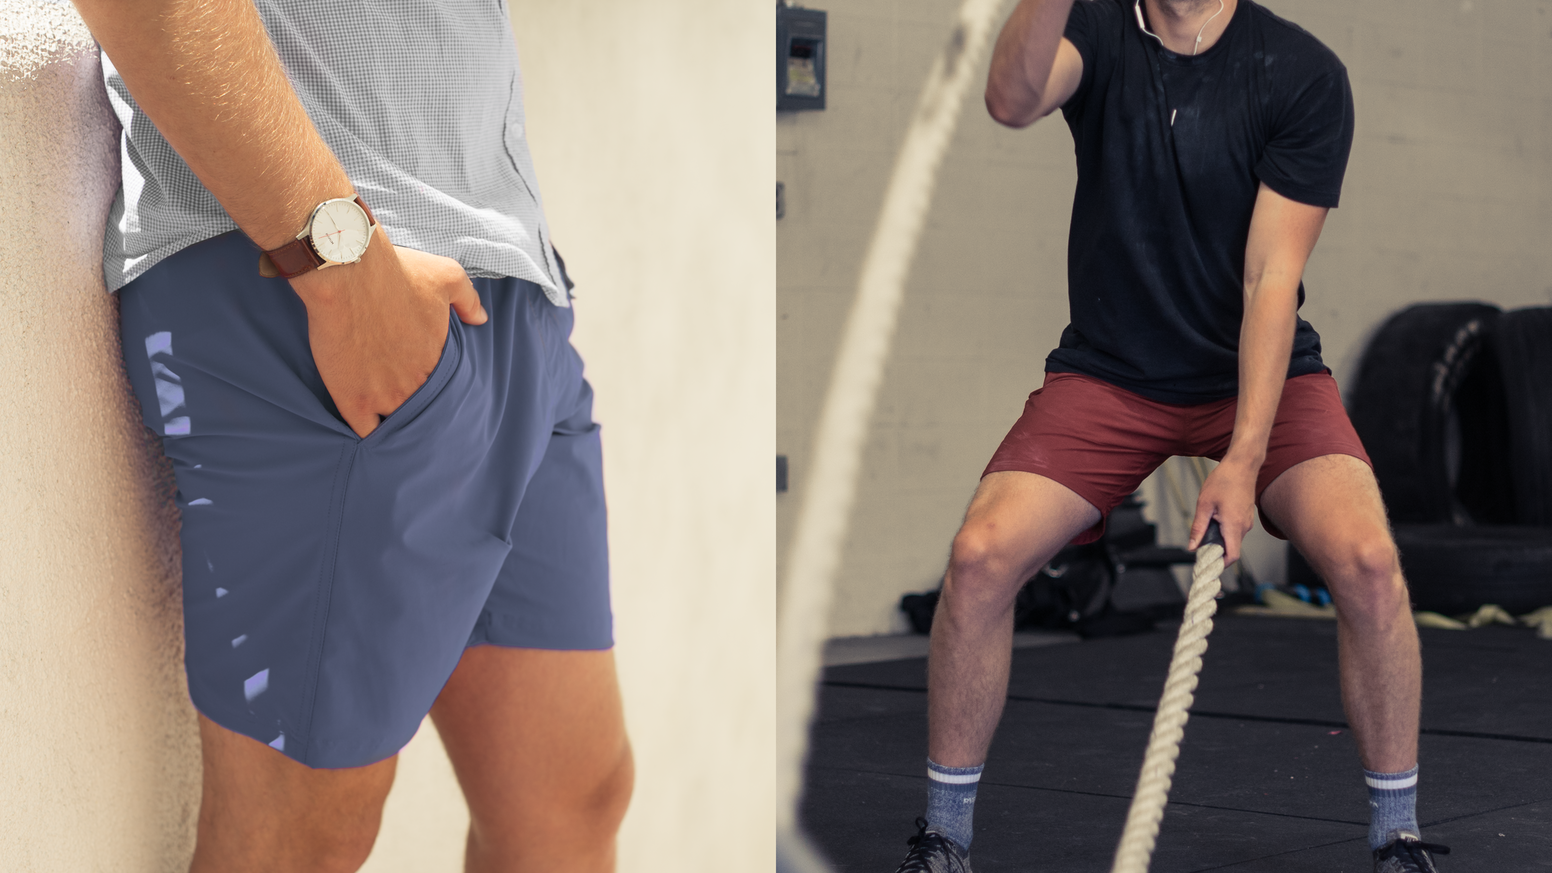 The only and last pair of shorts you'll ever need, with our Hip-Locked Media Pocket. For working out, going out, and everywhere in between.